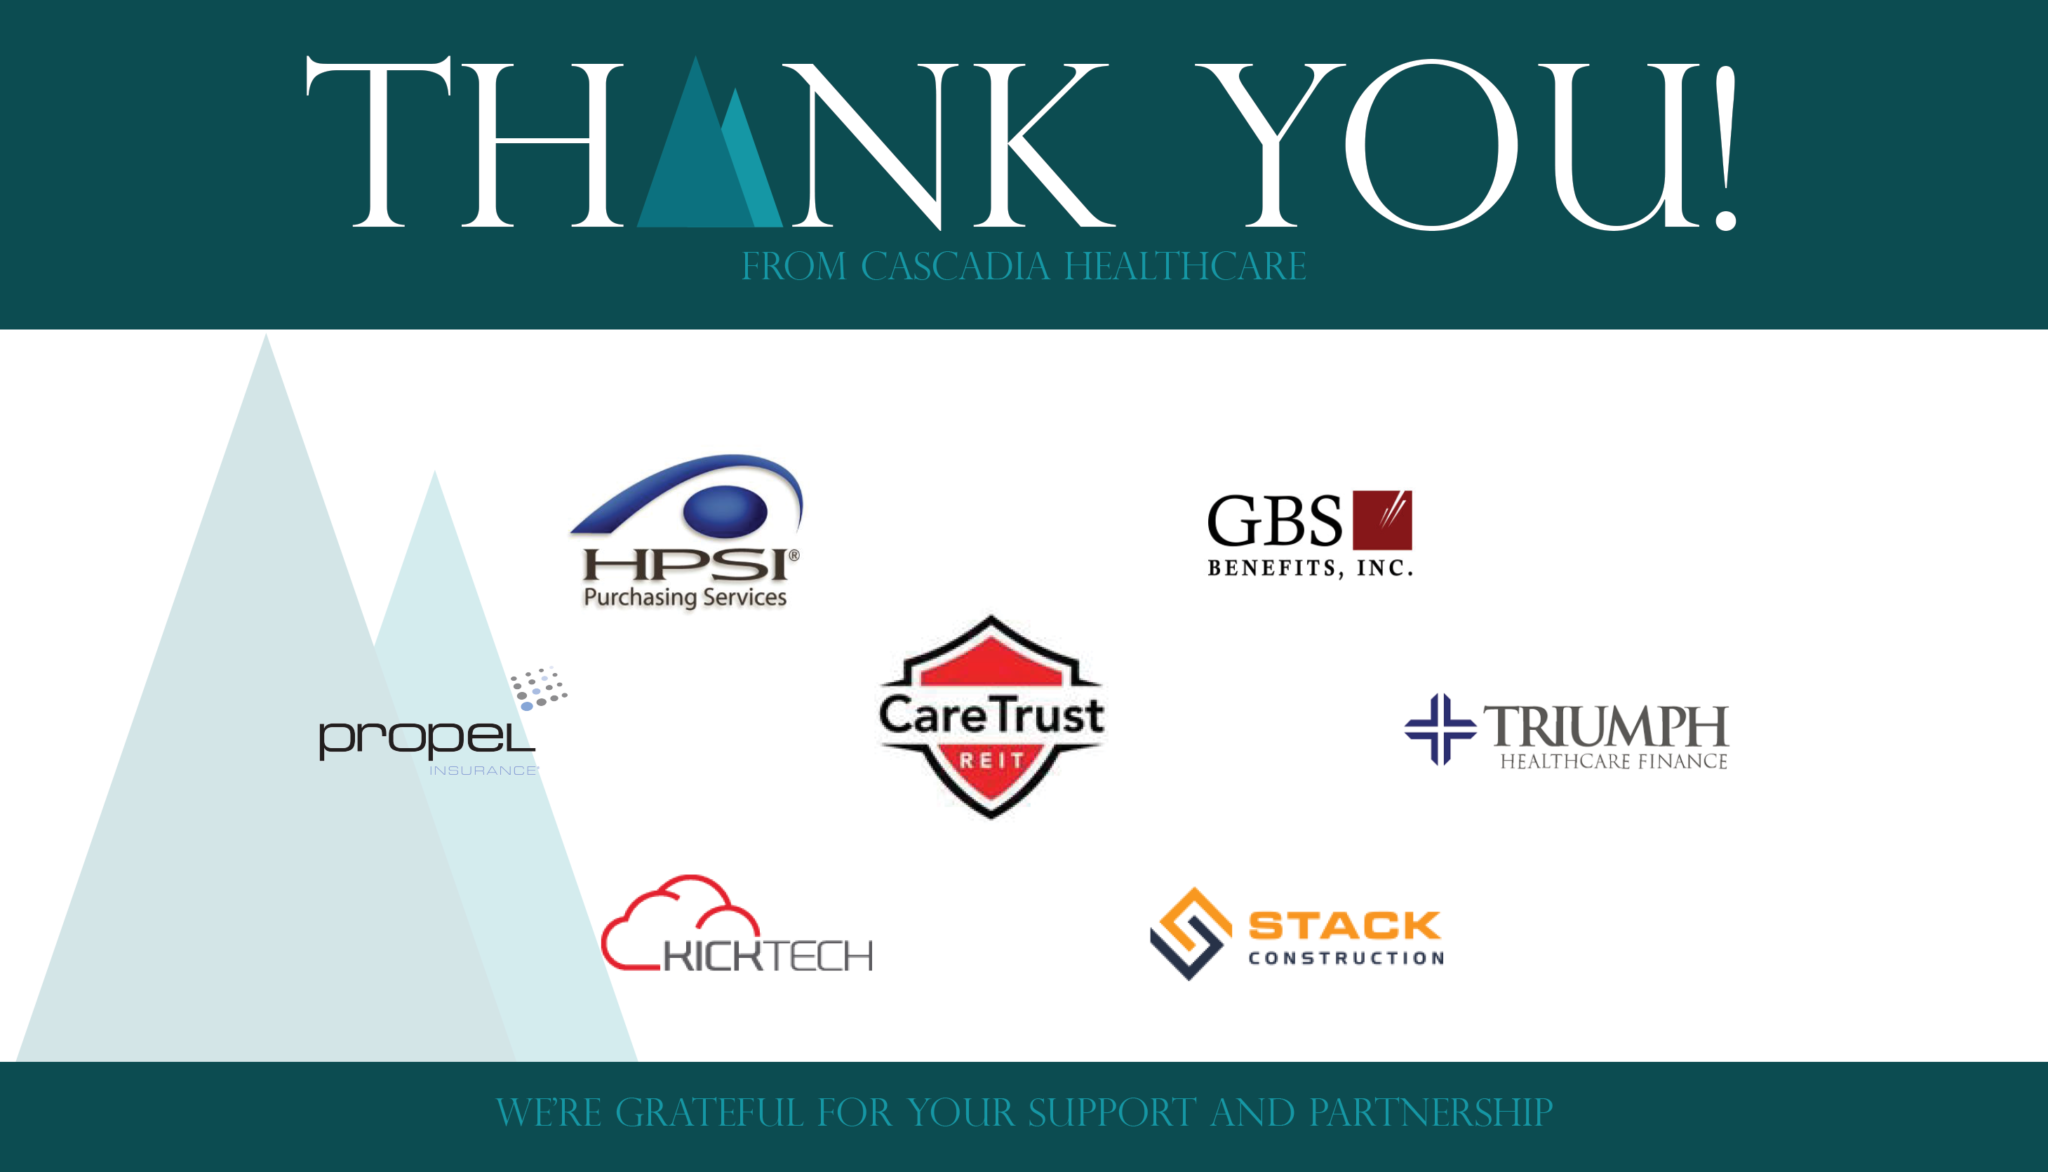 Thank you to all of our partners!